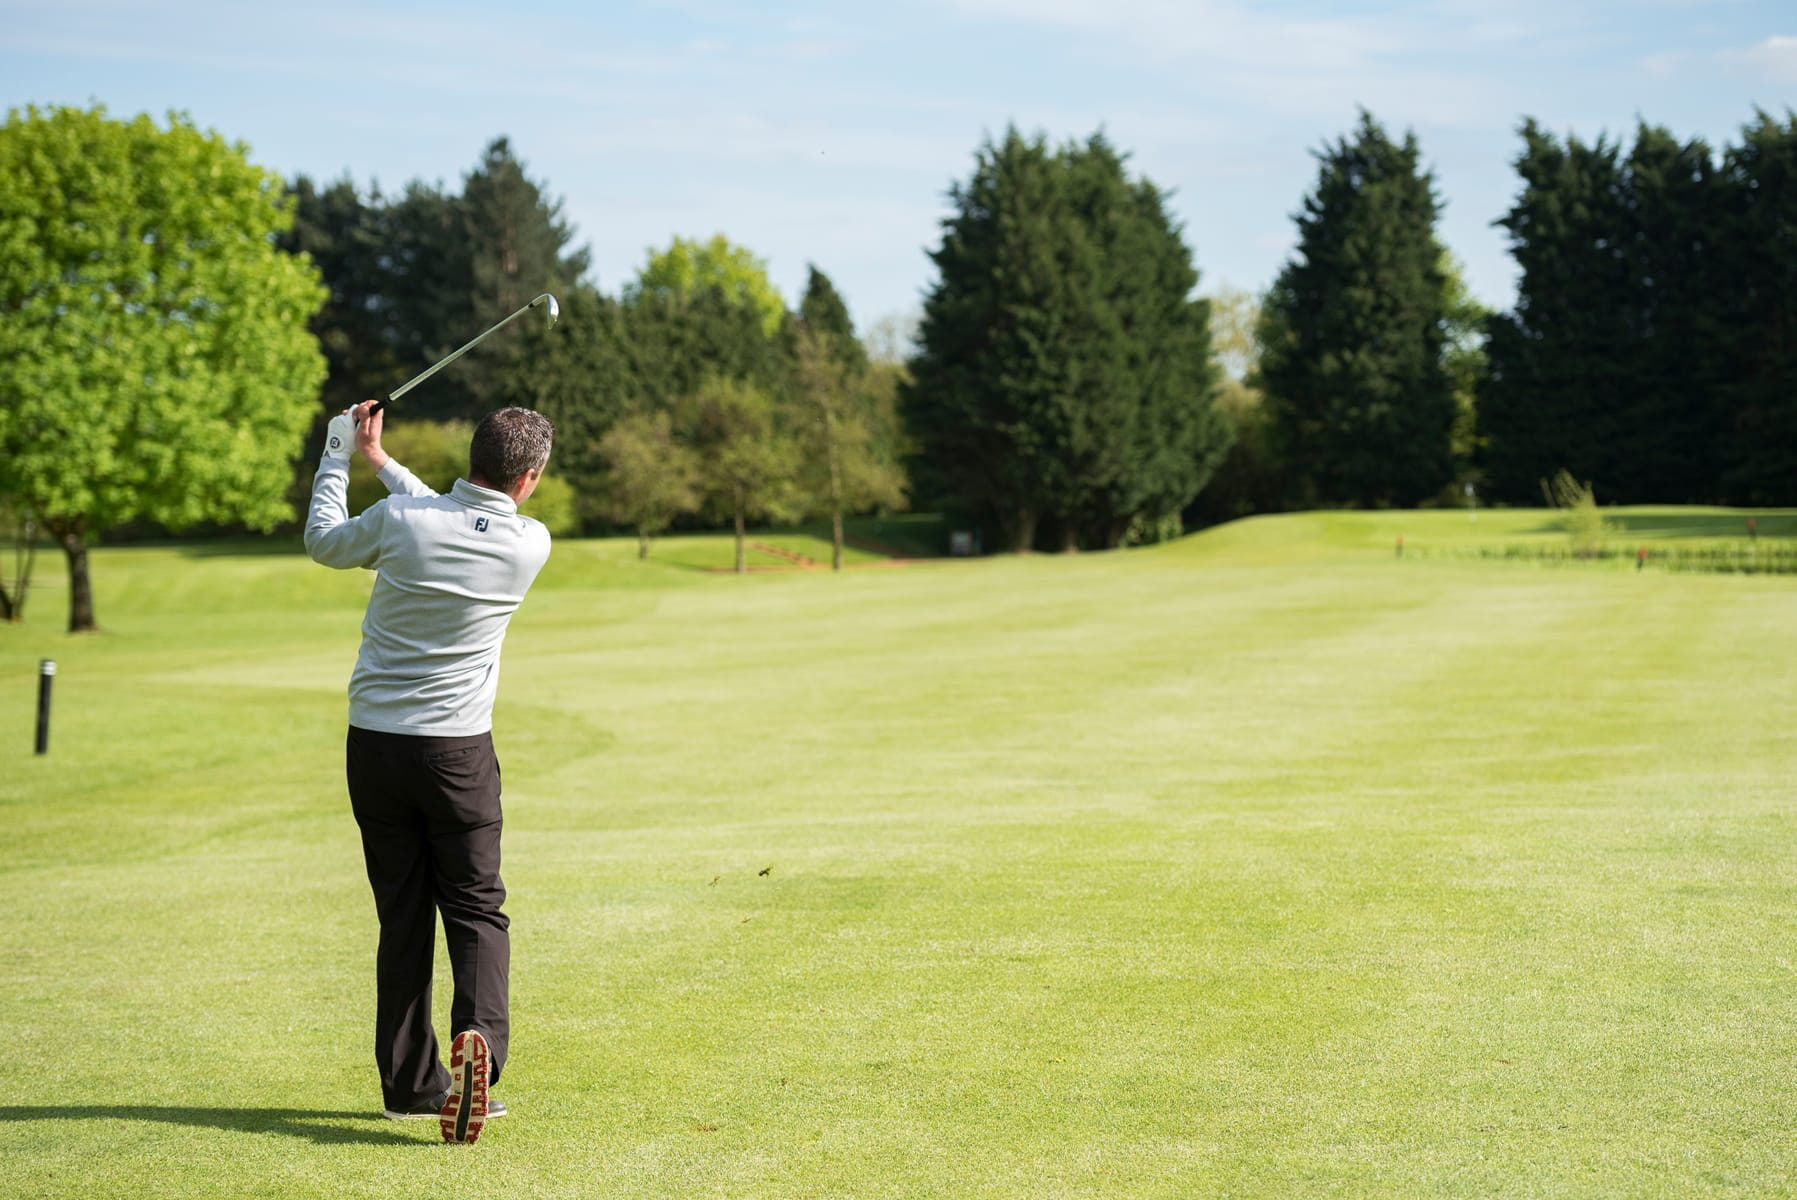 Golf Pro, Ped, Golf swing, Golf tuition in Bicester